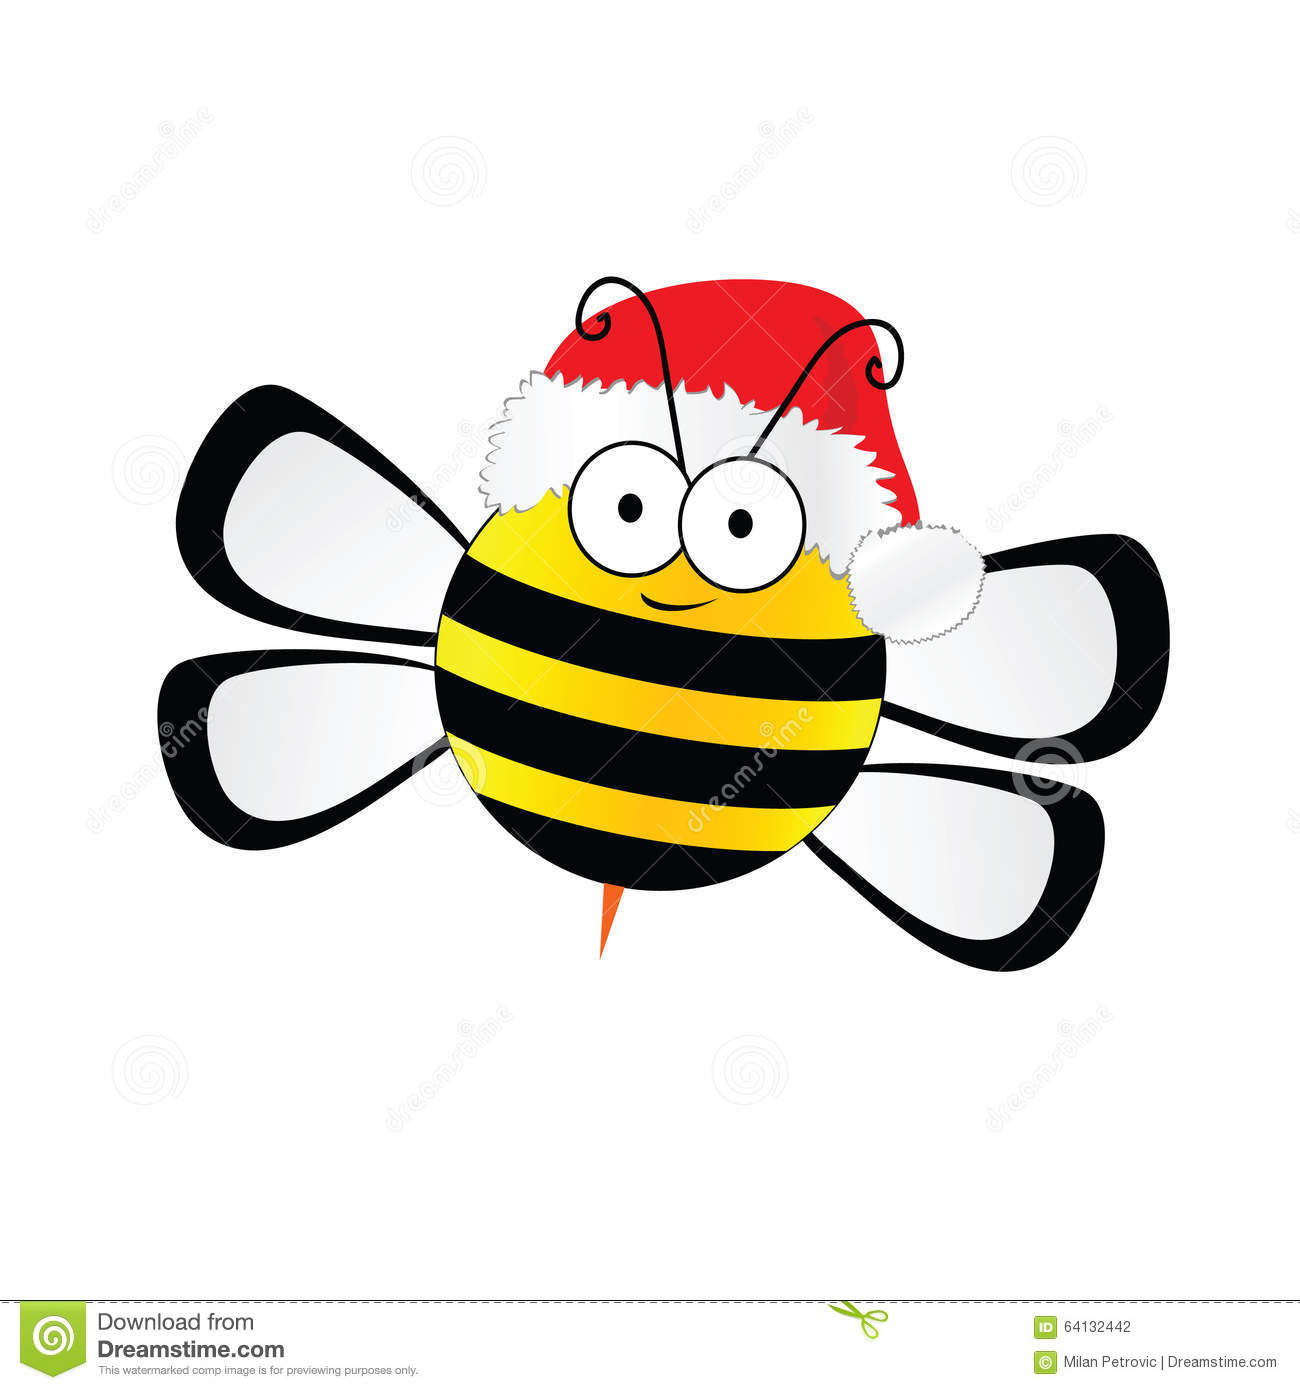 Pencil and in color. Bee clipart christmas